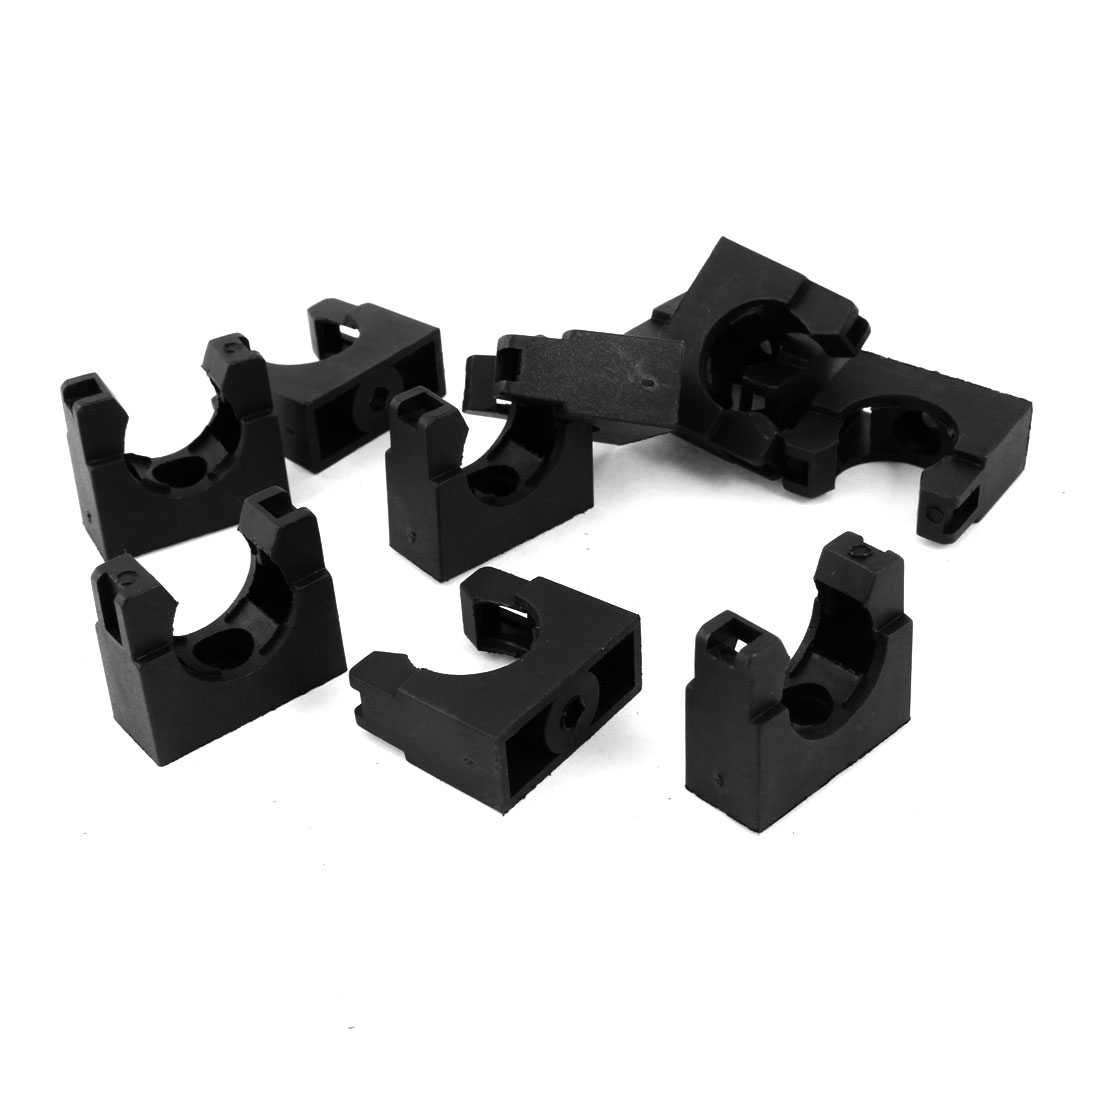 10pcs 20mm Corrugated Tubing Black Plastic Fixed Mount Bracket